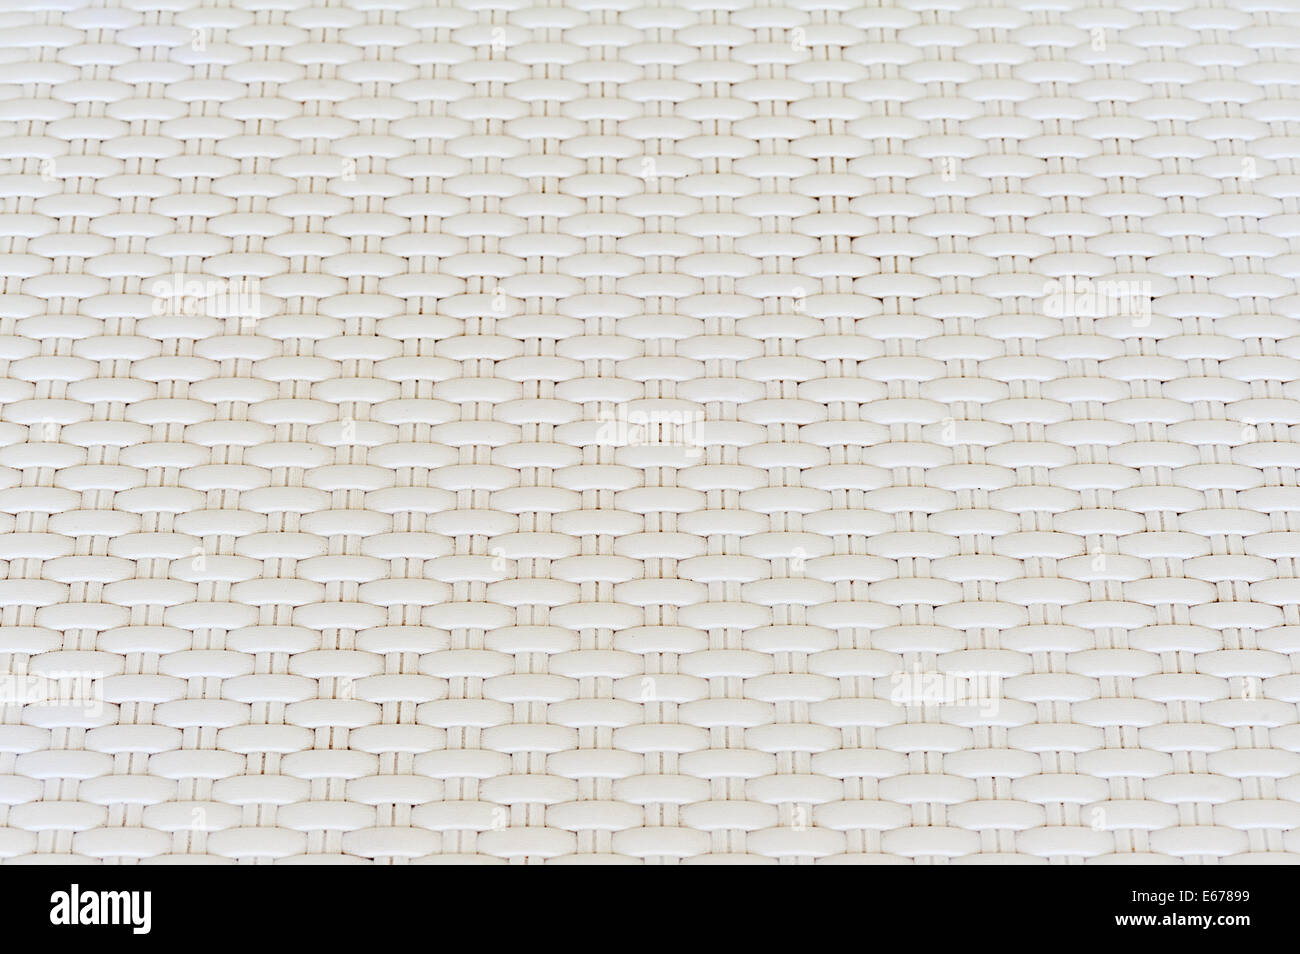 White cream plastic surface with repeating pattern. For use as background. Stock Photo